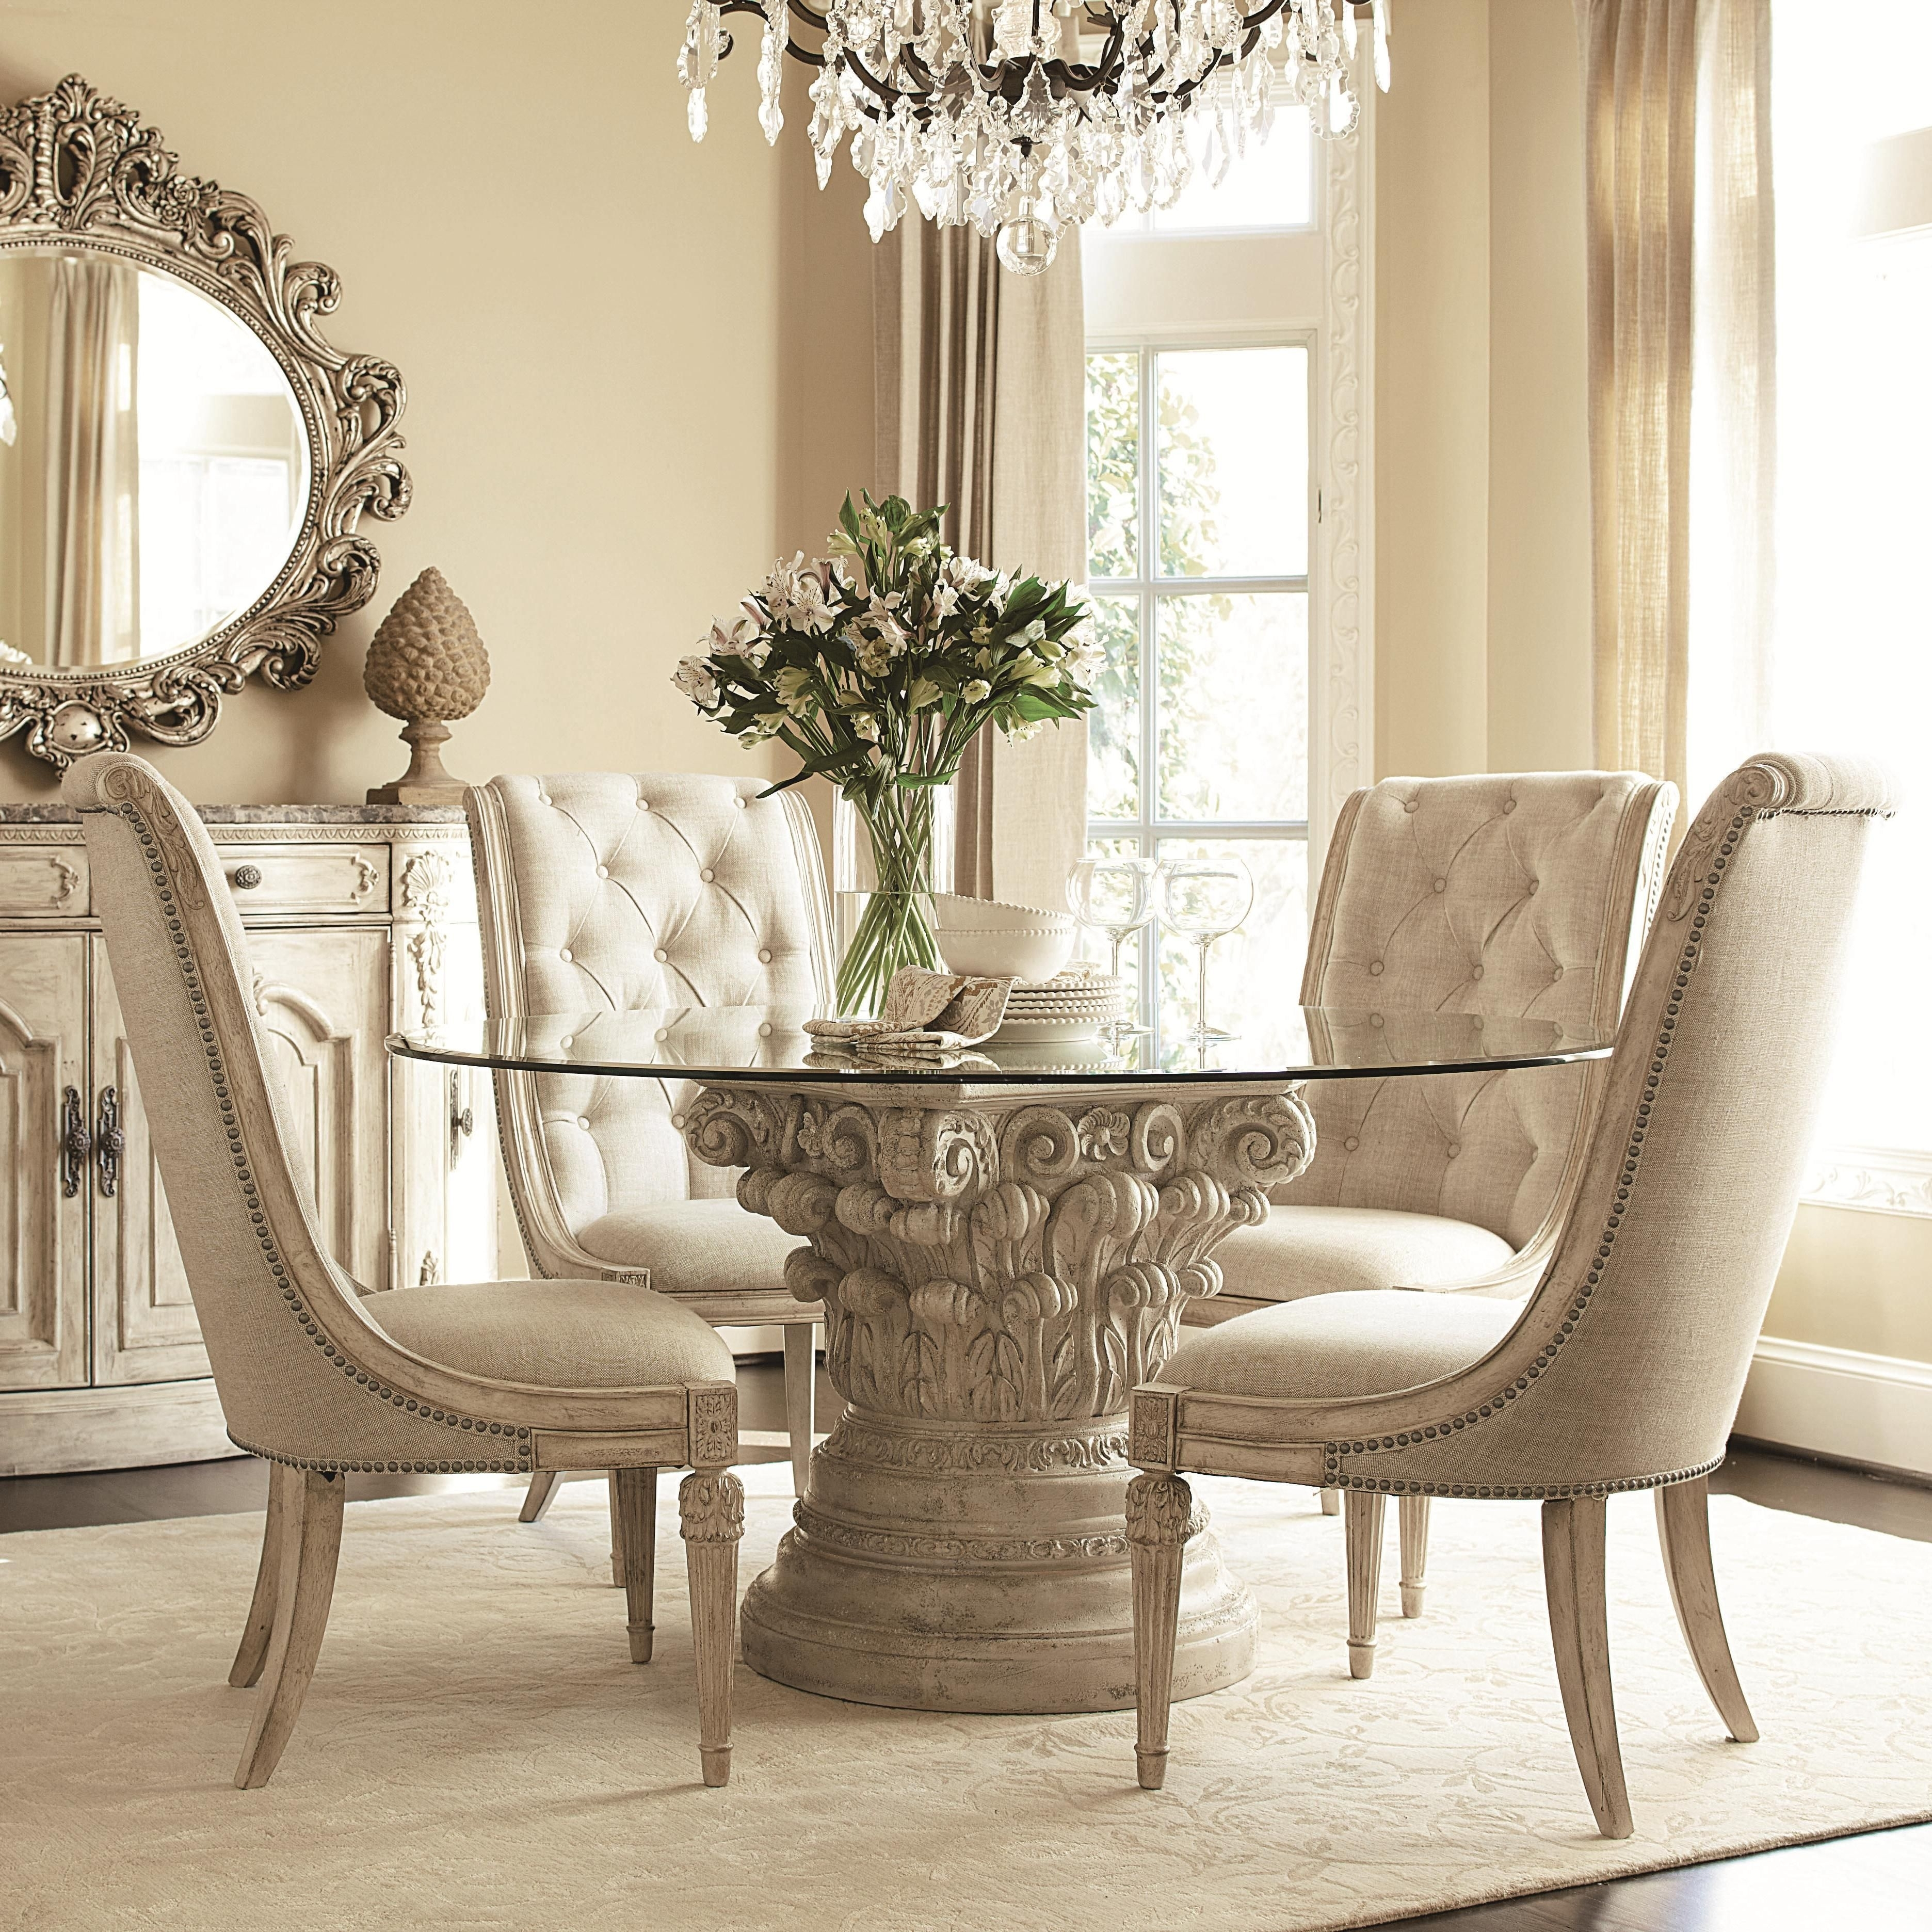 Jessica Mcclintock Home – The Boutique Collection 5 Piece Round Intended For Most Recently Released Market 6 Piece Dining Sets With Host And Side Chairs (Photo 3 of 20)